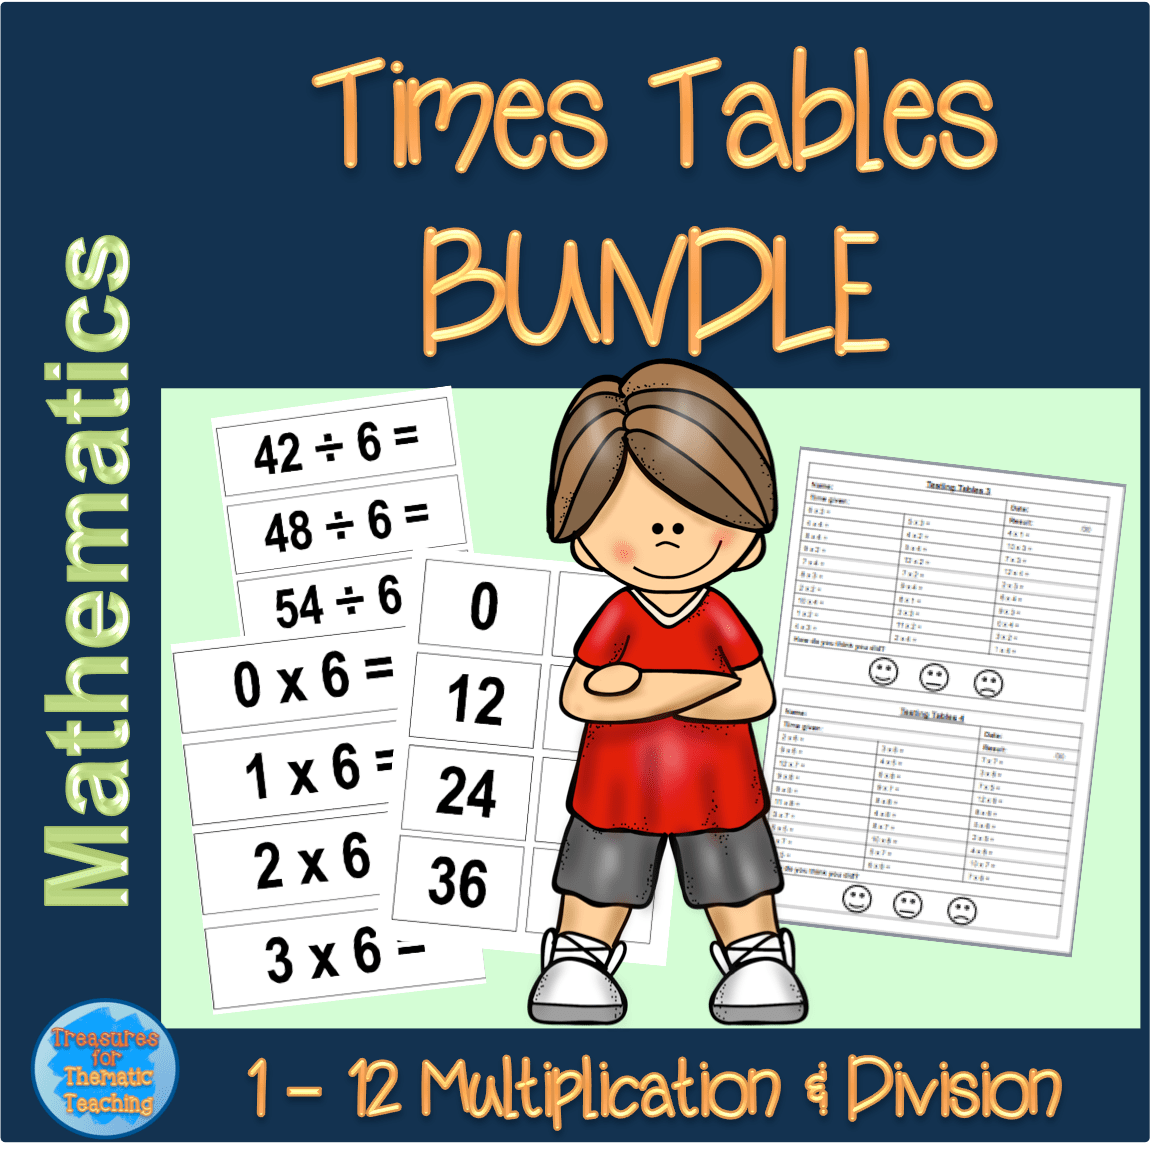 Times Tables Bundle Flashcards And Tables Tests Teacha